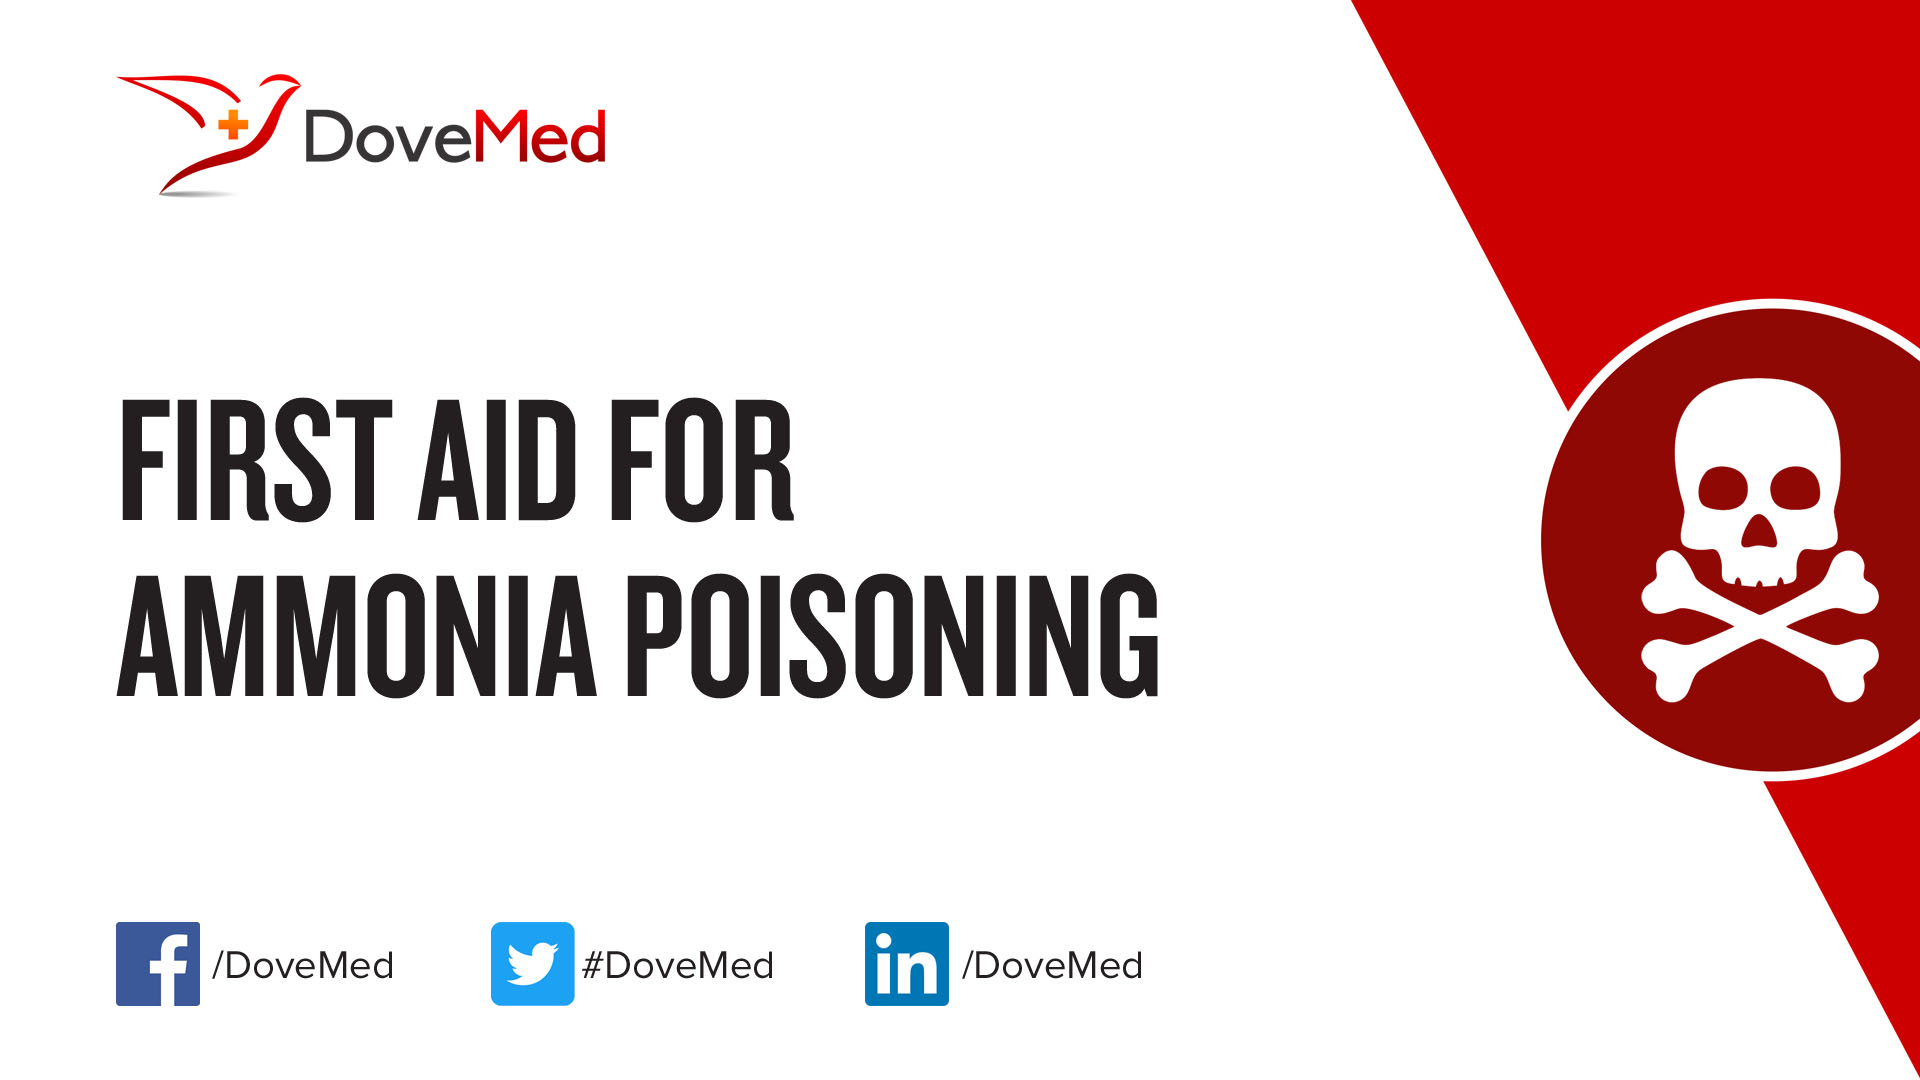 First Aid for Ammonia Poisoning